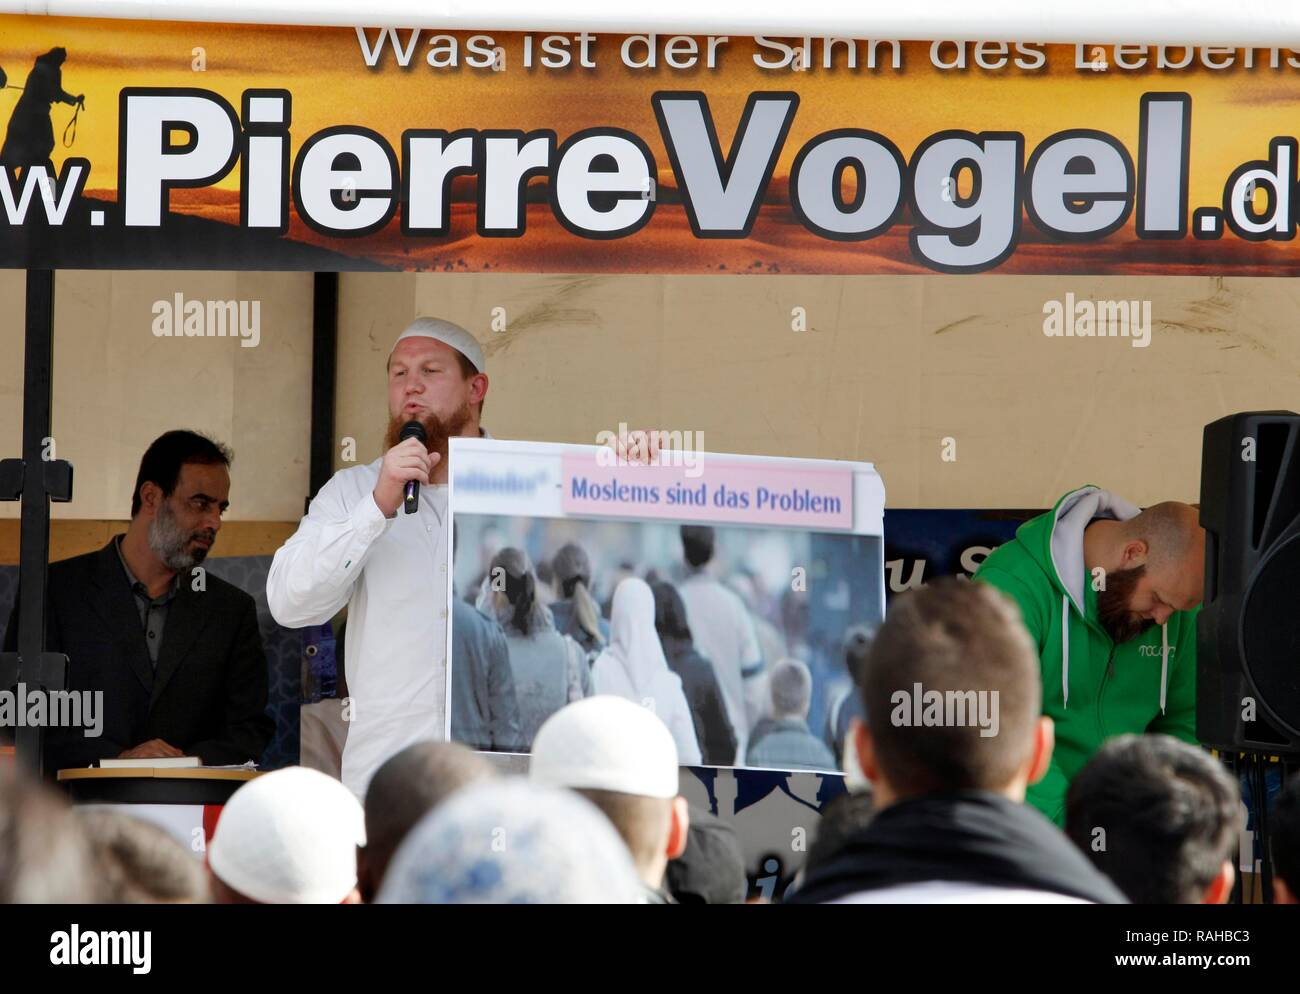 Preacher Pierre Vogel at the '1. Islamischer Friedenskongress' rally of the Salafi movement, comparing the persecution of Jews - Stock Image